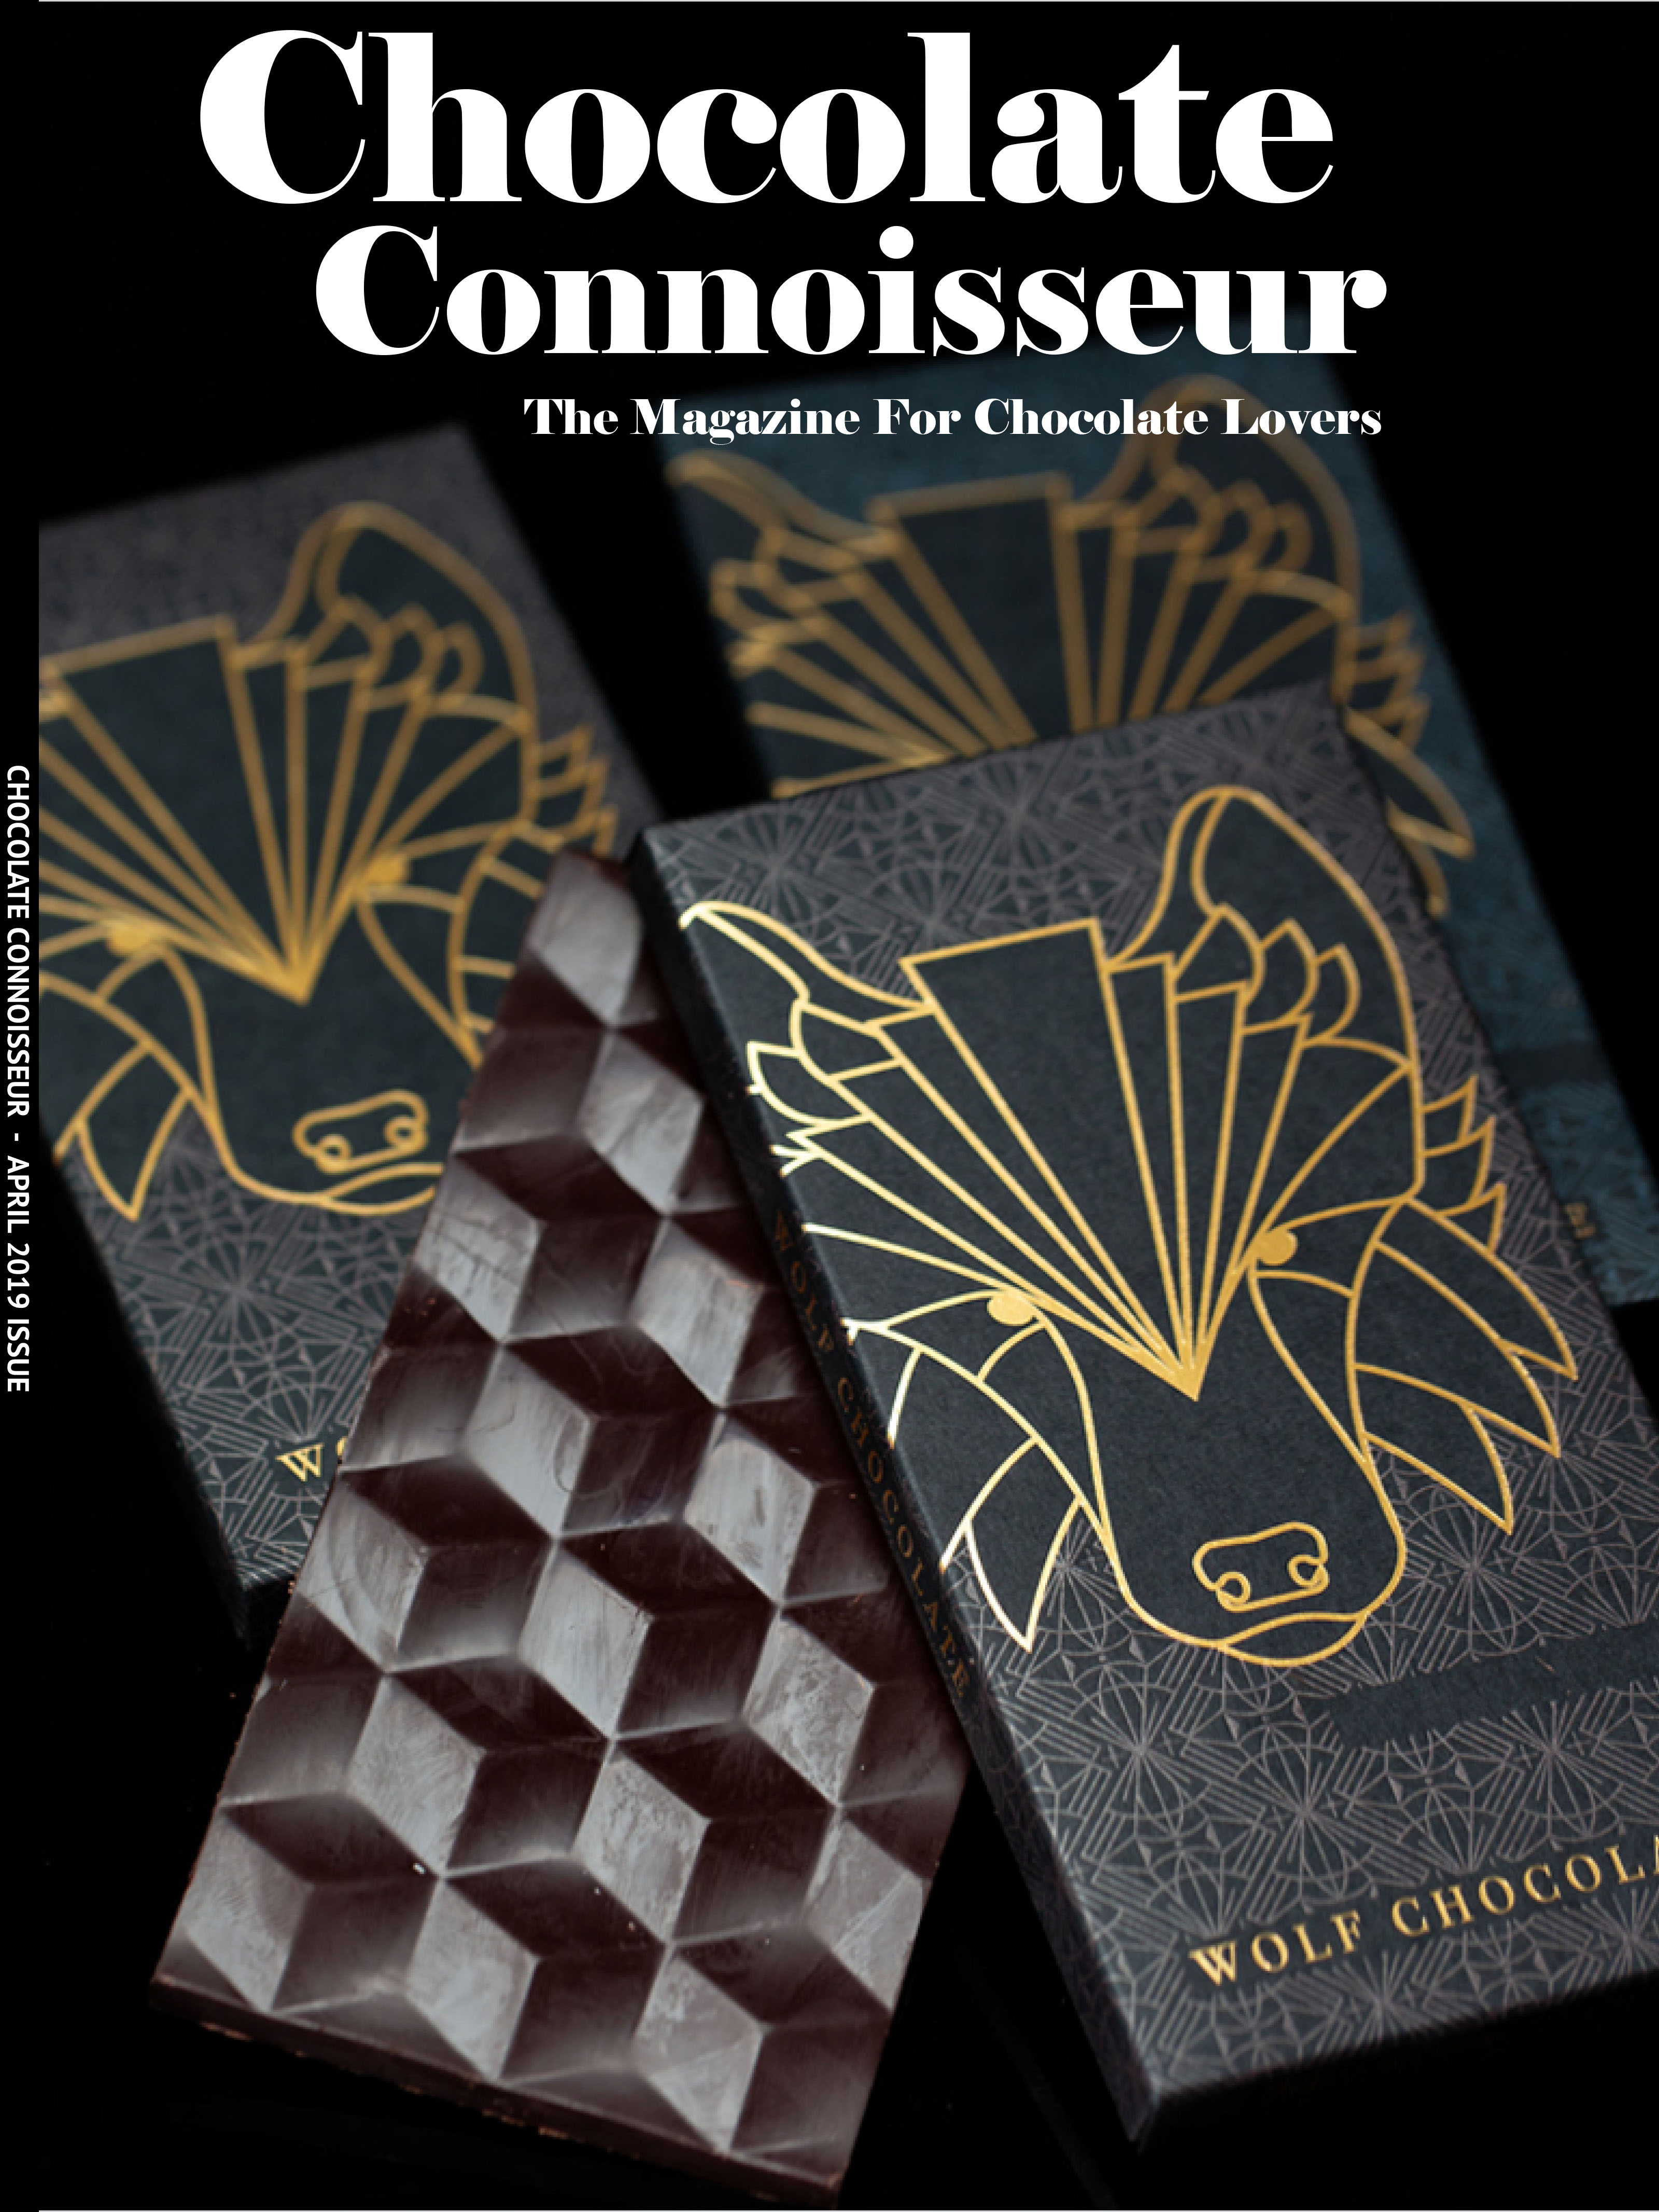 Chocolate Connoisseur Magazine April 2019 Issue Cover